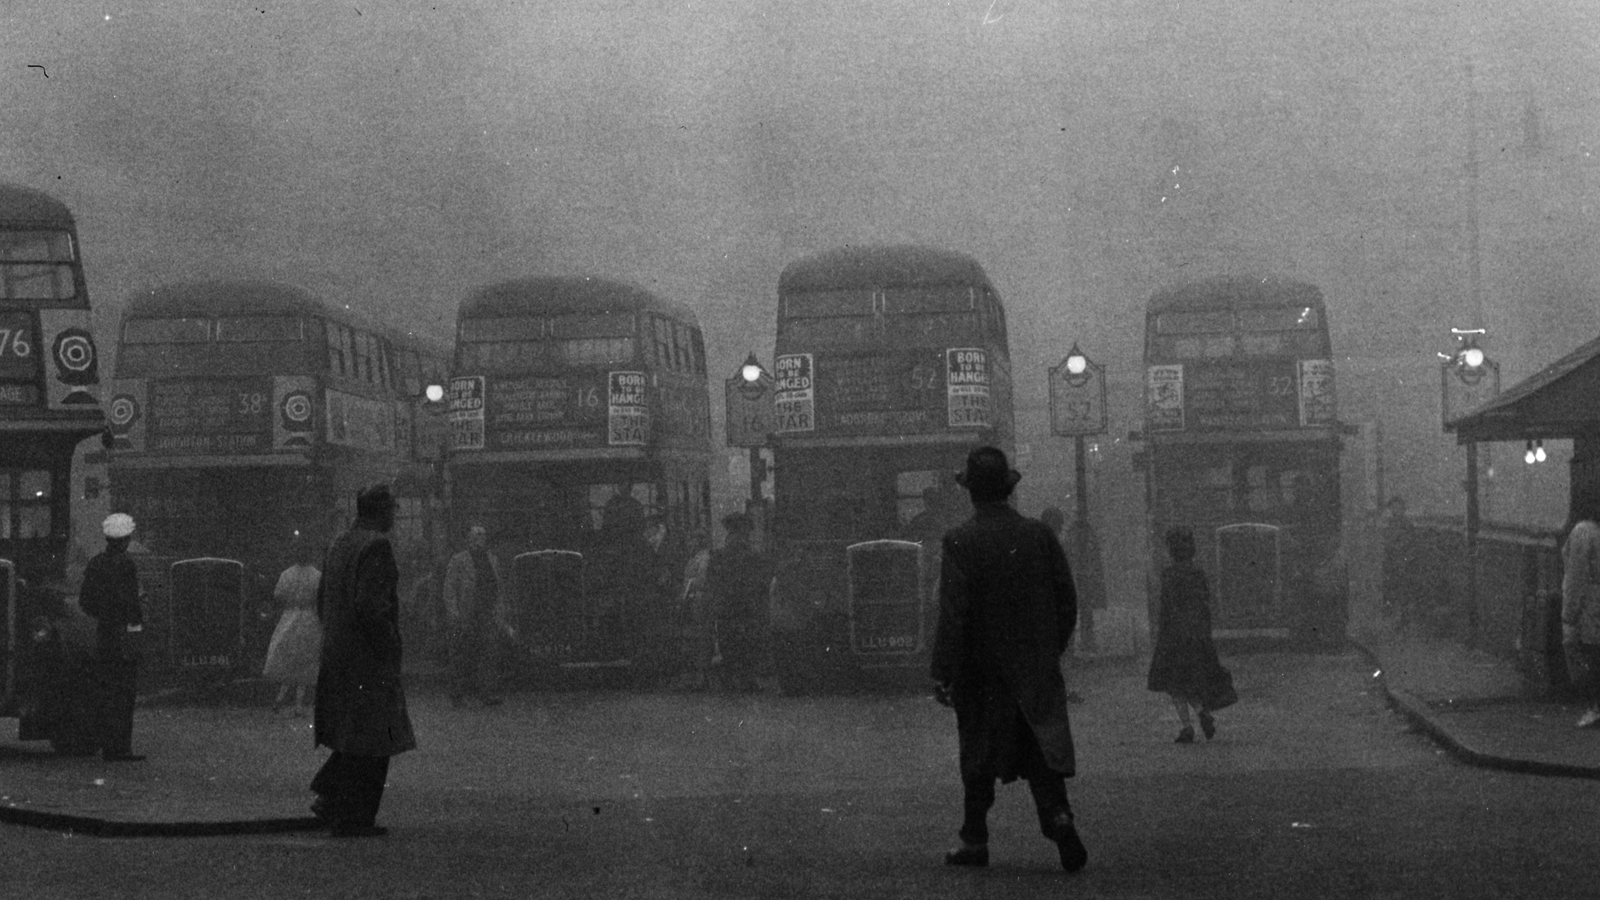 Black and white photograph of London buses in the smog, c. 1960